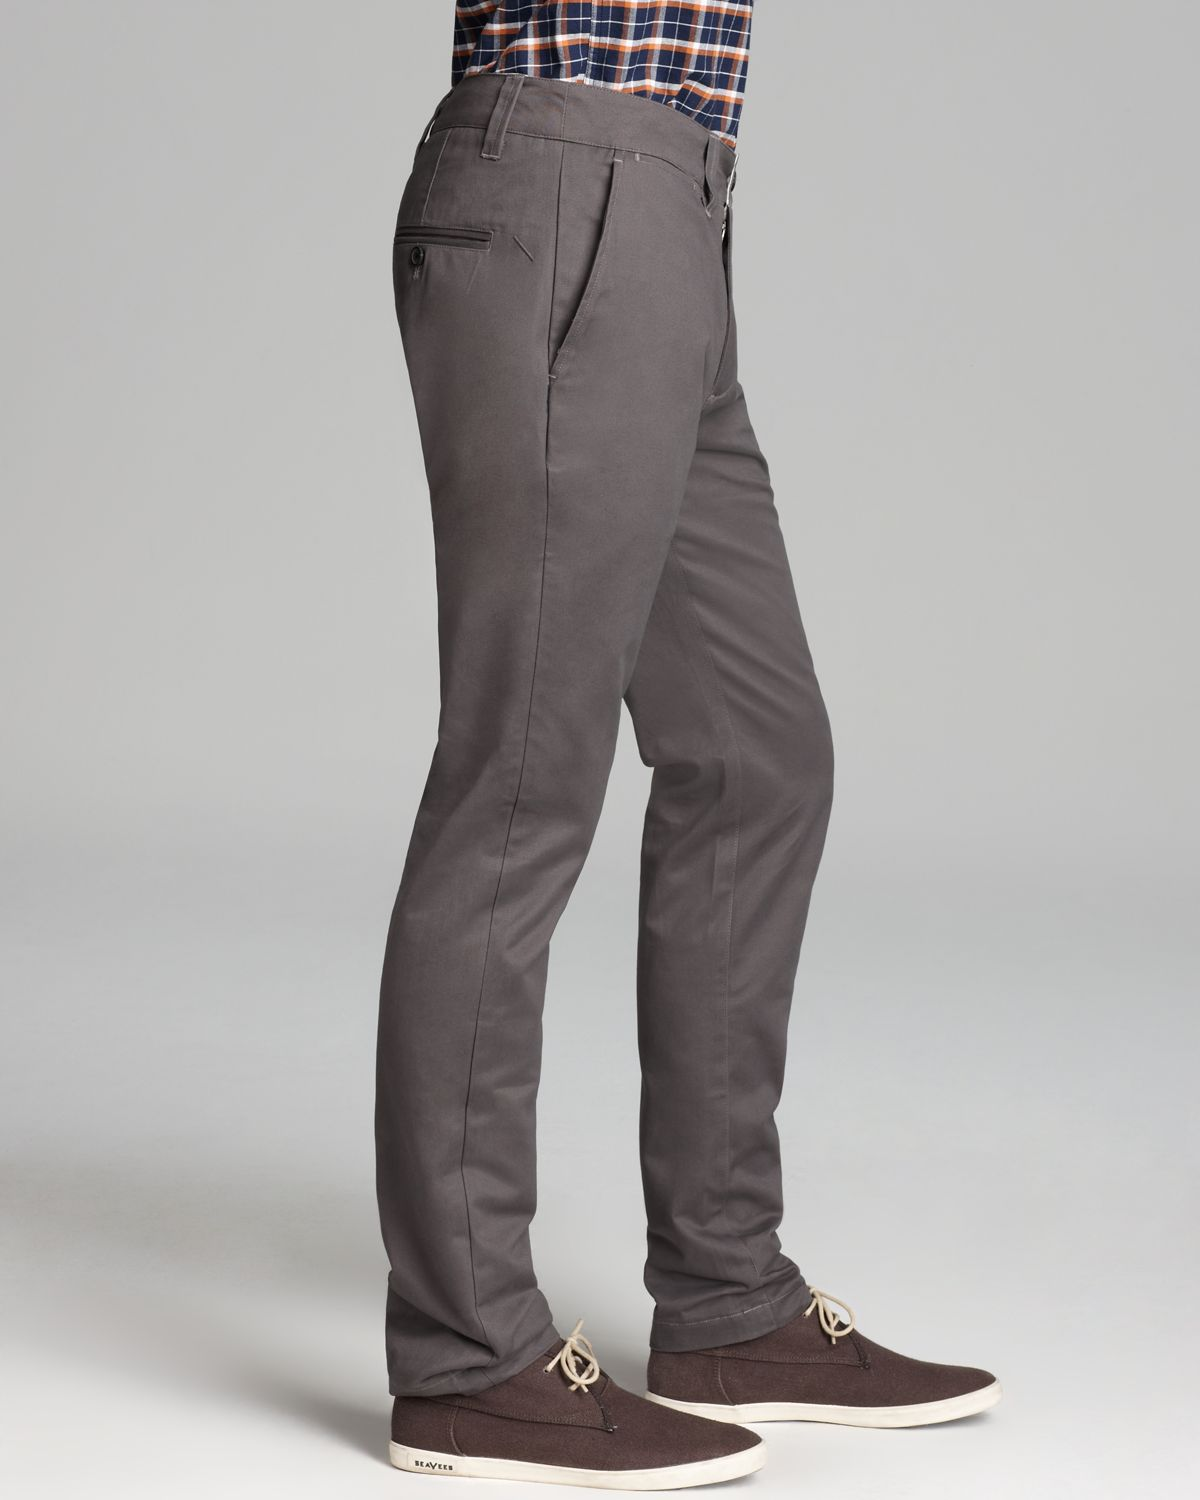 Free shipping and returns on Men's Grey Chino & Khaki Pants at al9mg7p1yos.gq